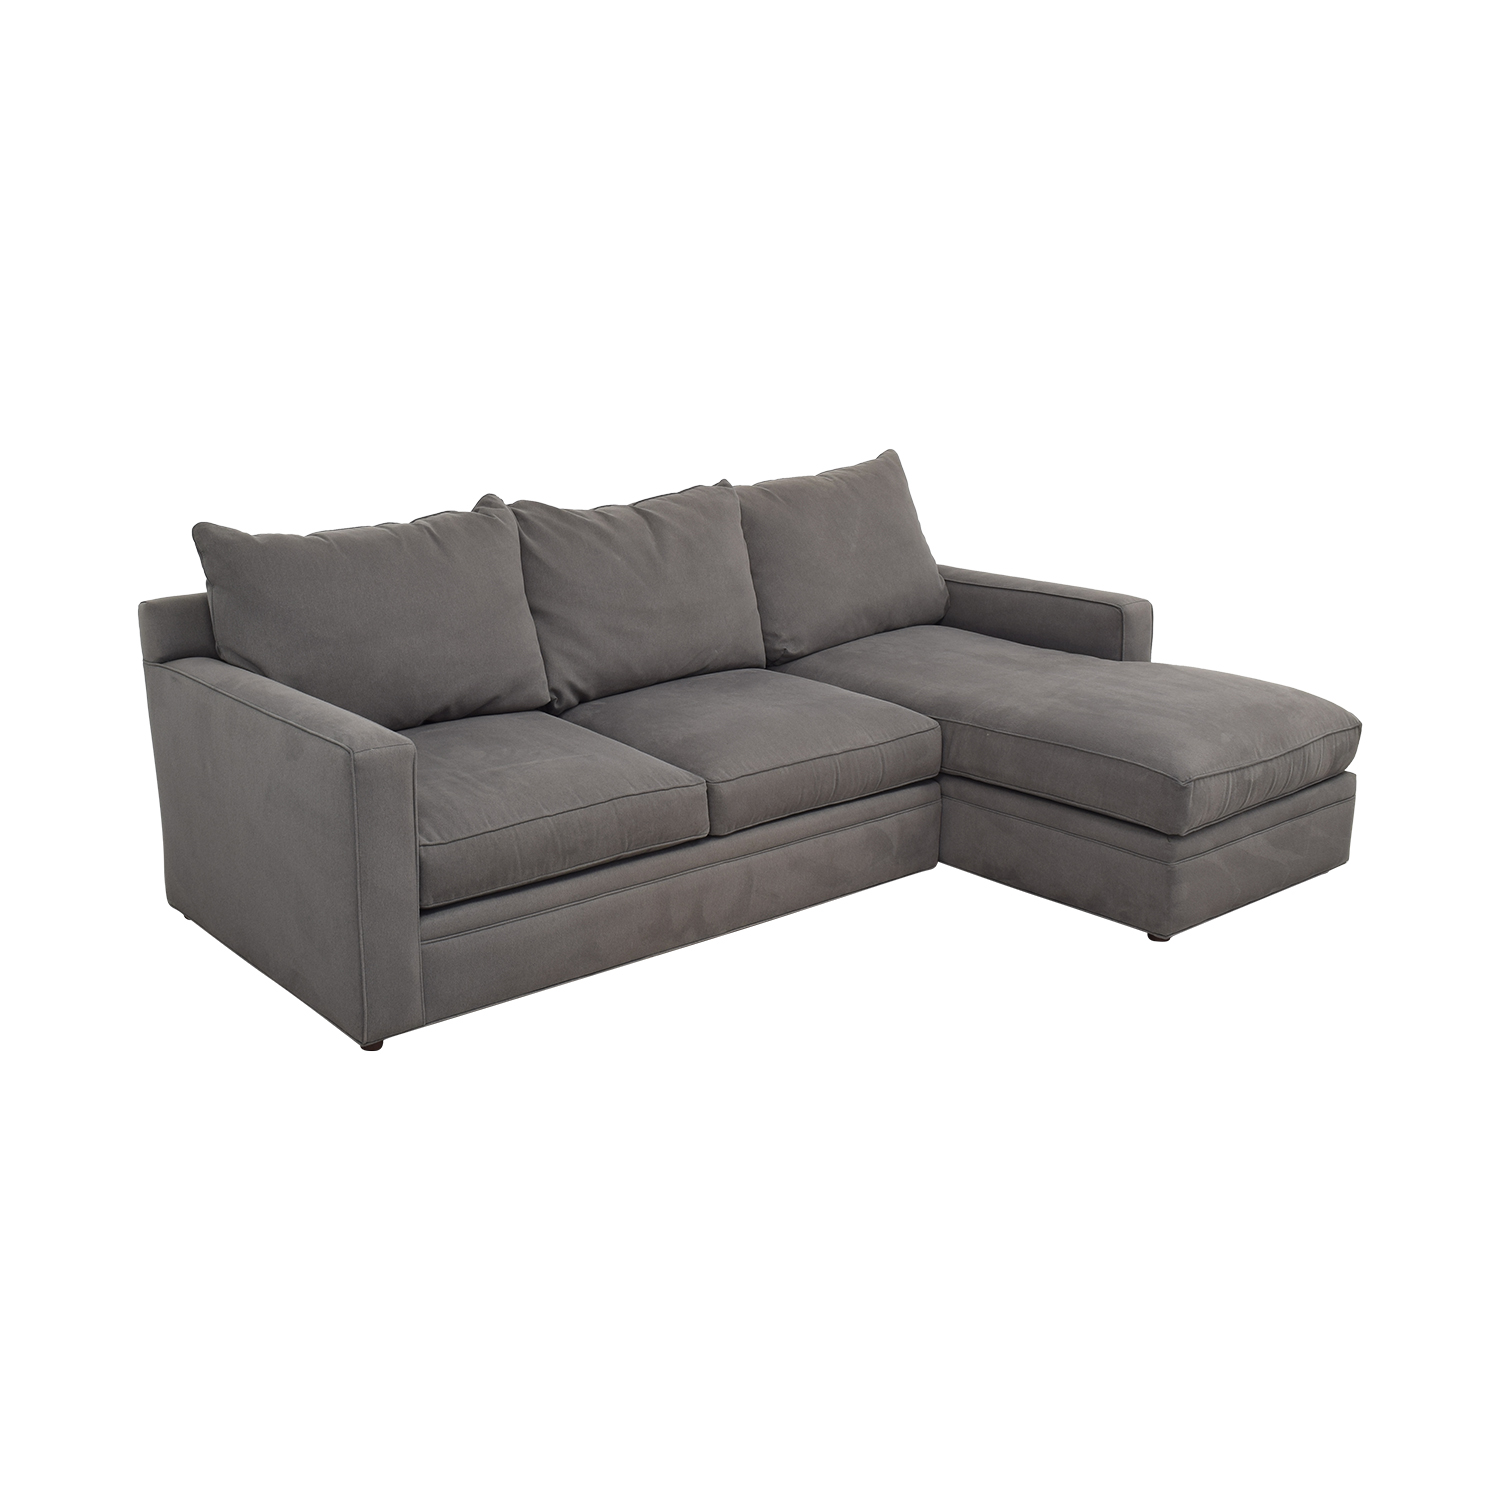 Room & Board Room & Board Orson Sectional Sofa with Chaise nj